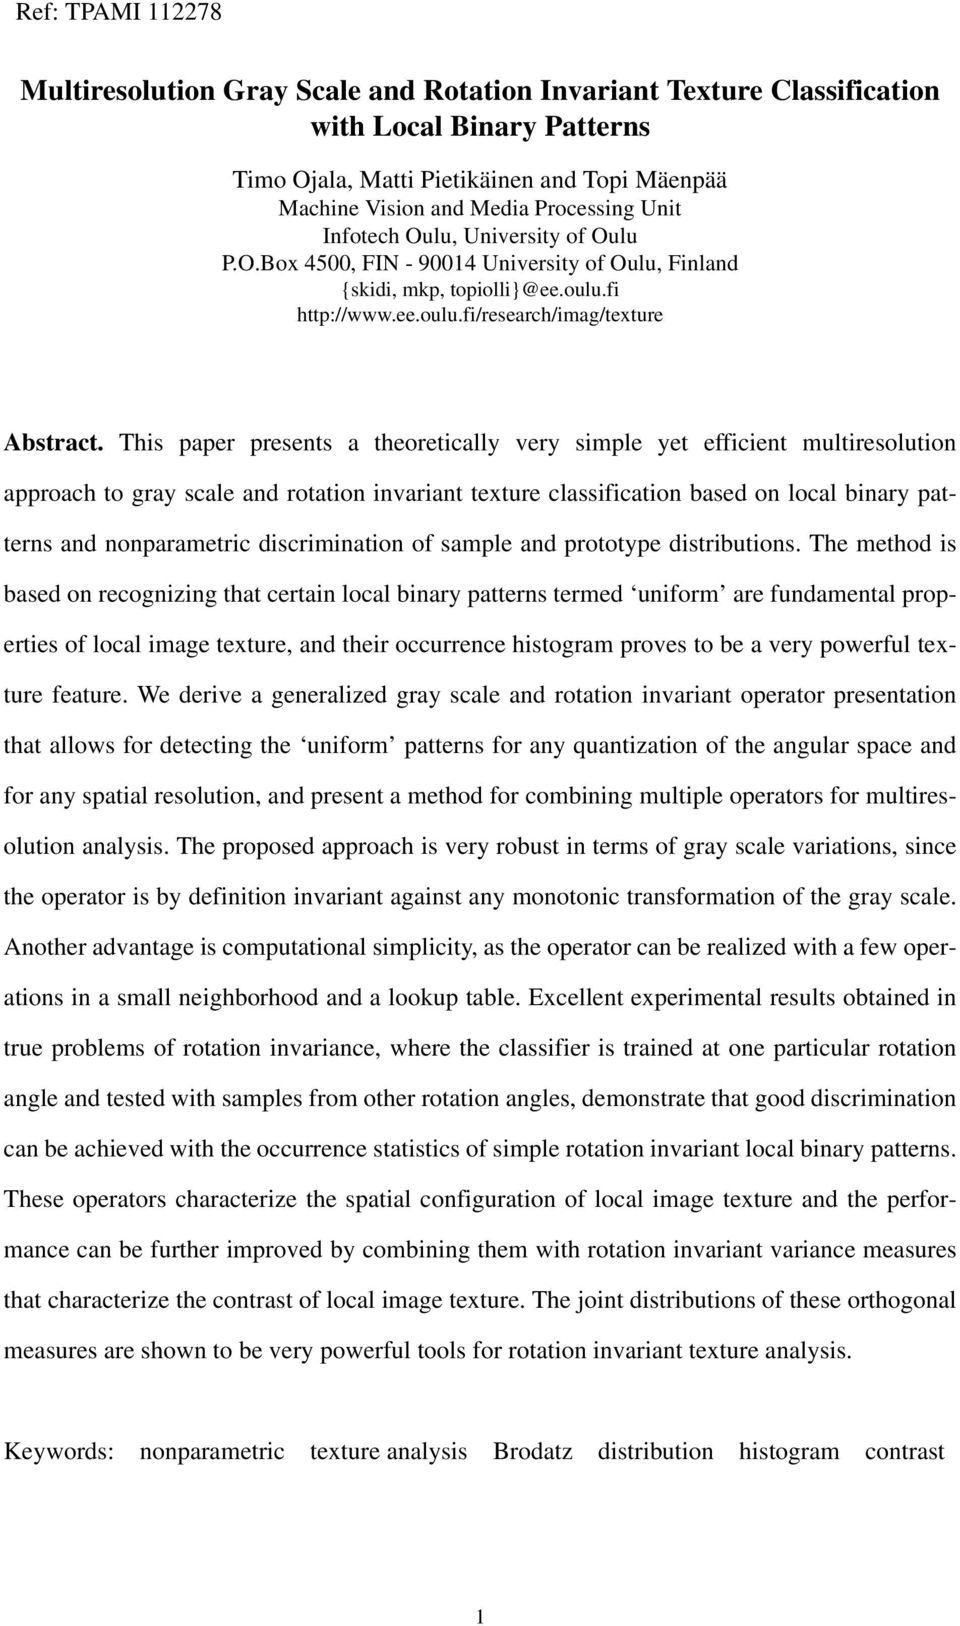 This paper presents a theoretically very simple yet efficient multiresolution approach to gray scale and rotation invariant texture classification based on local binary patterns and nonparametric